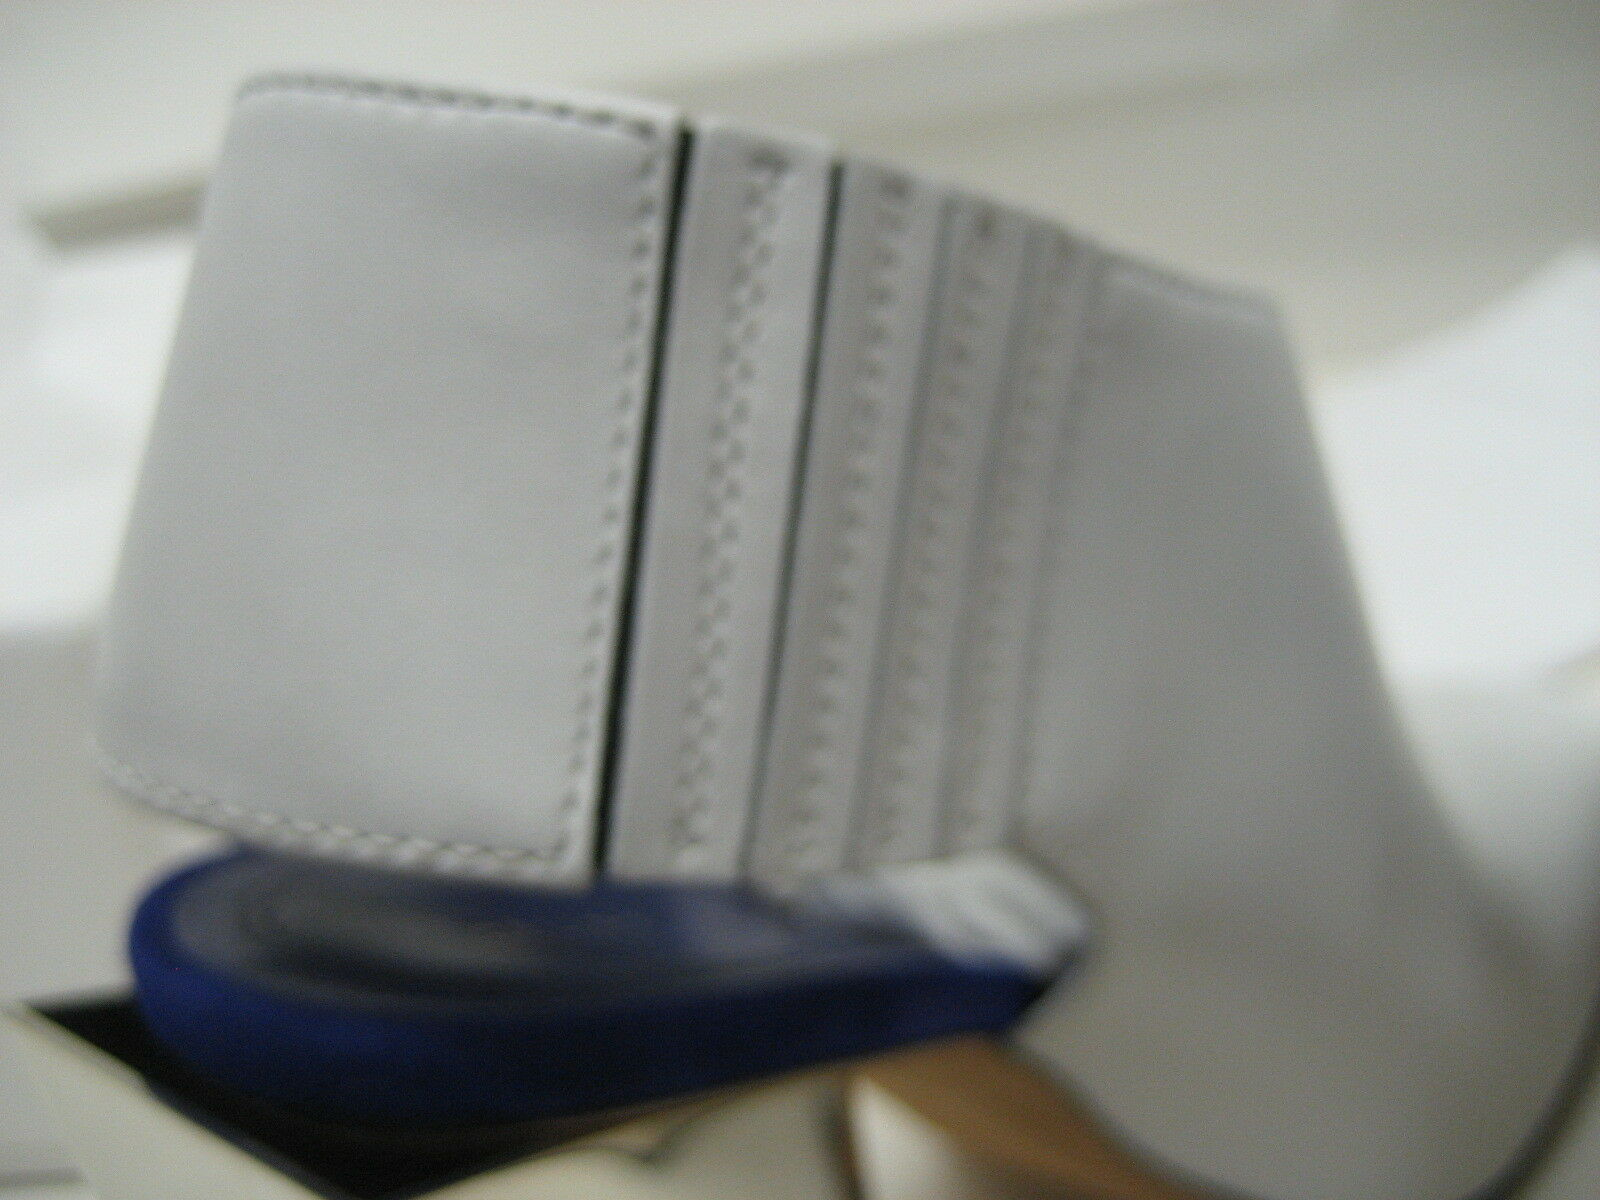 NEW CELINE US 8.5 EUR 39 Off-Weiß Leather Leather Leather Stiefelies High Mirror Heels schuhe fb8d43